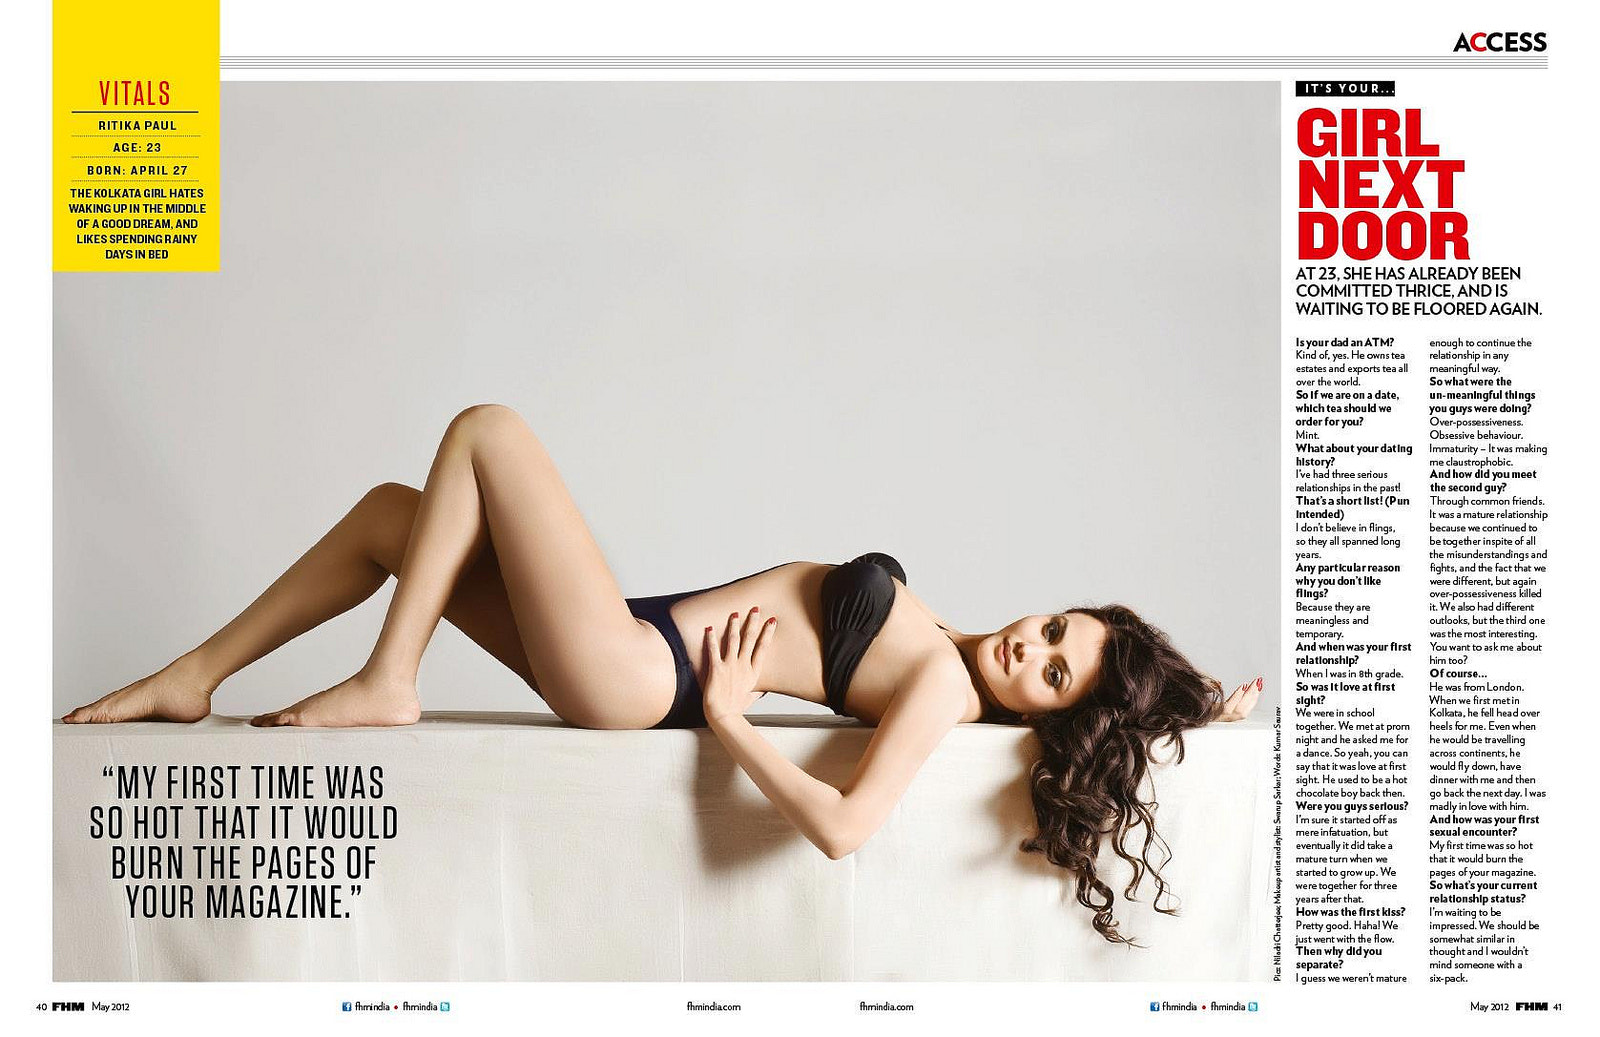 Photograph Ritika Paul shot by me, FHM India Girl Next Door, May 2012 by Niladri Chatterjee on 500px